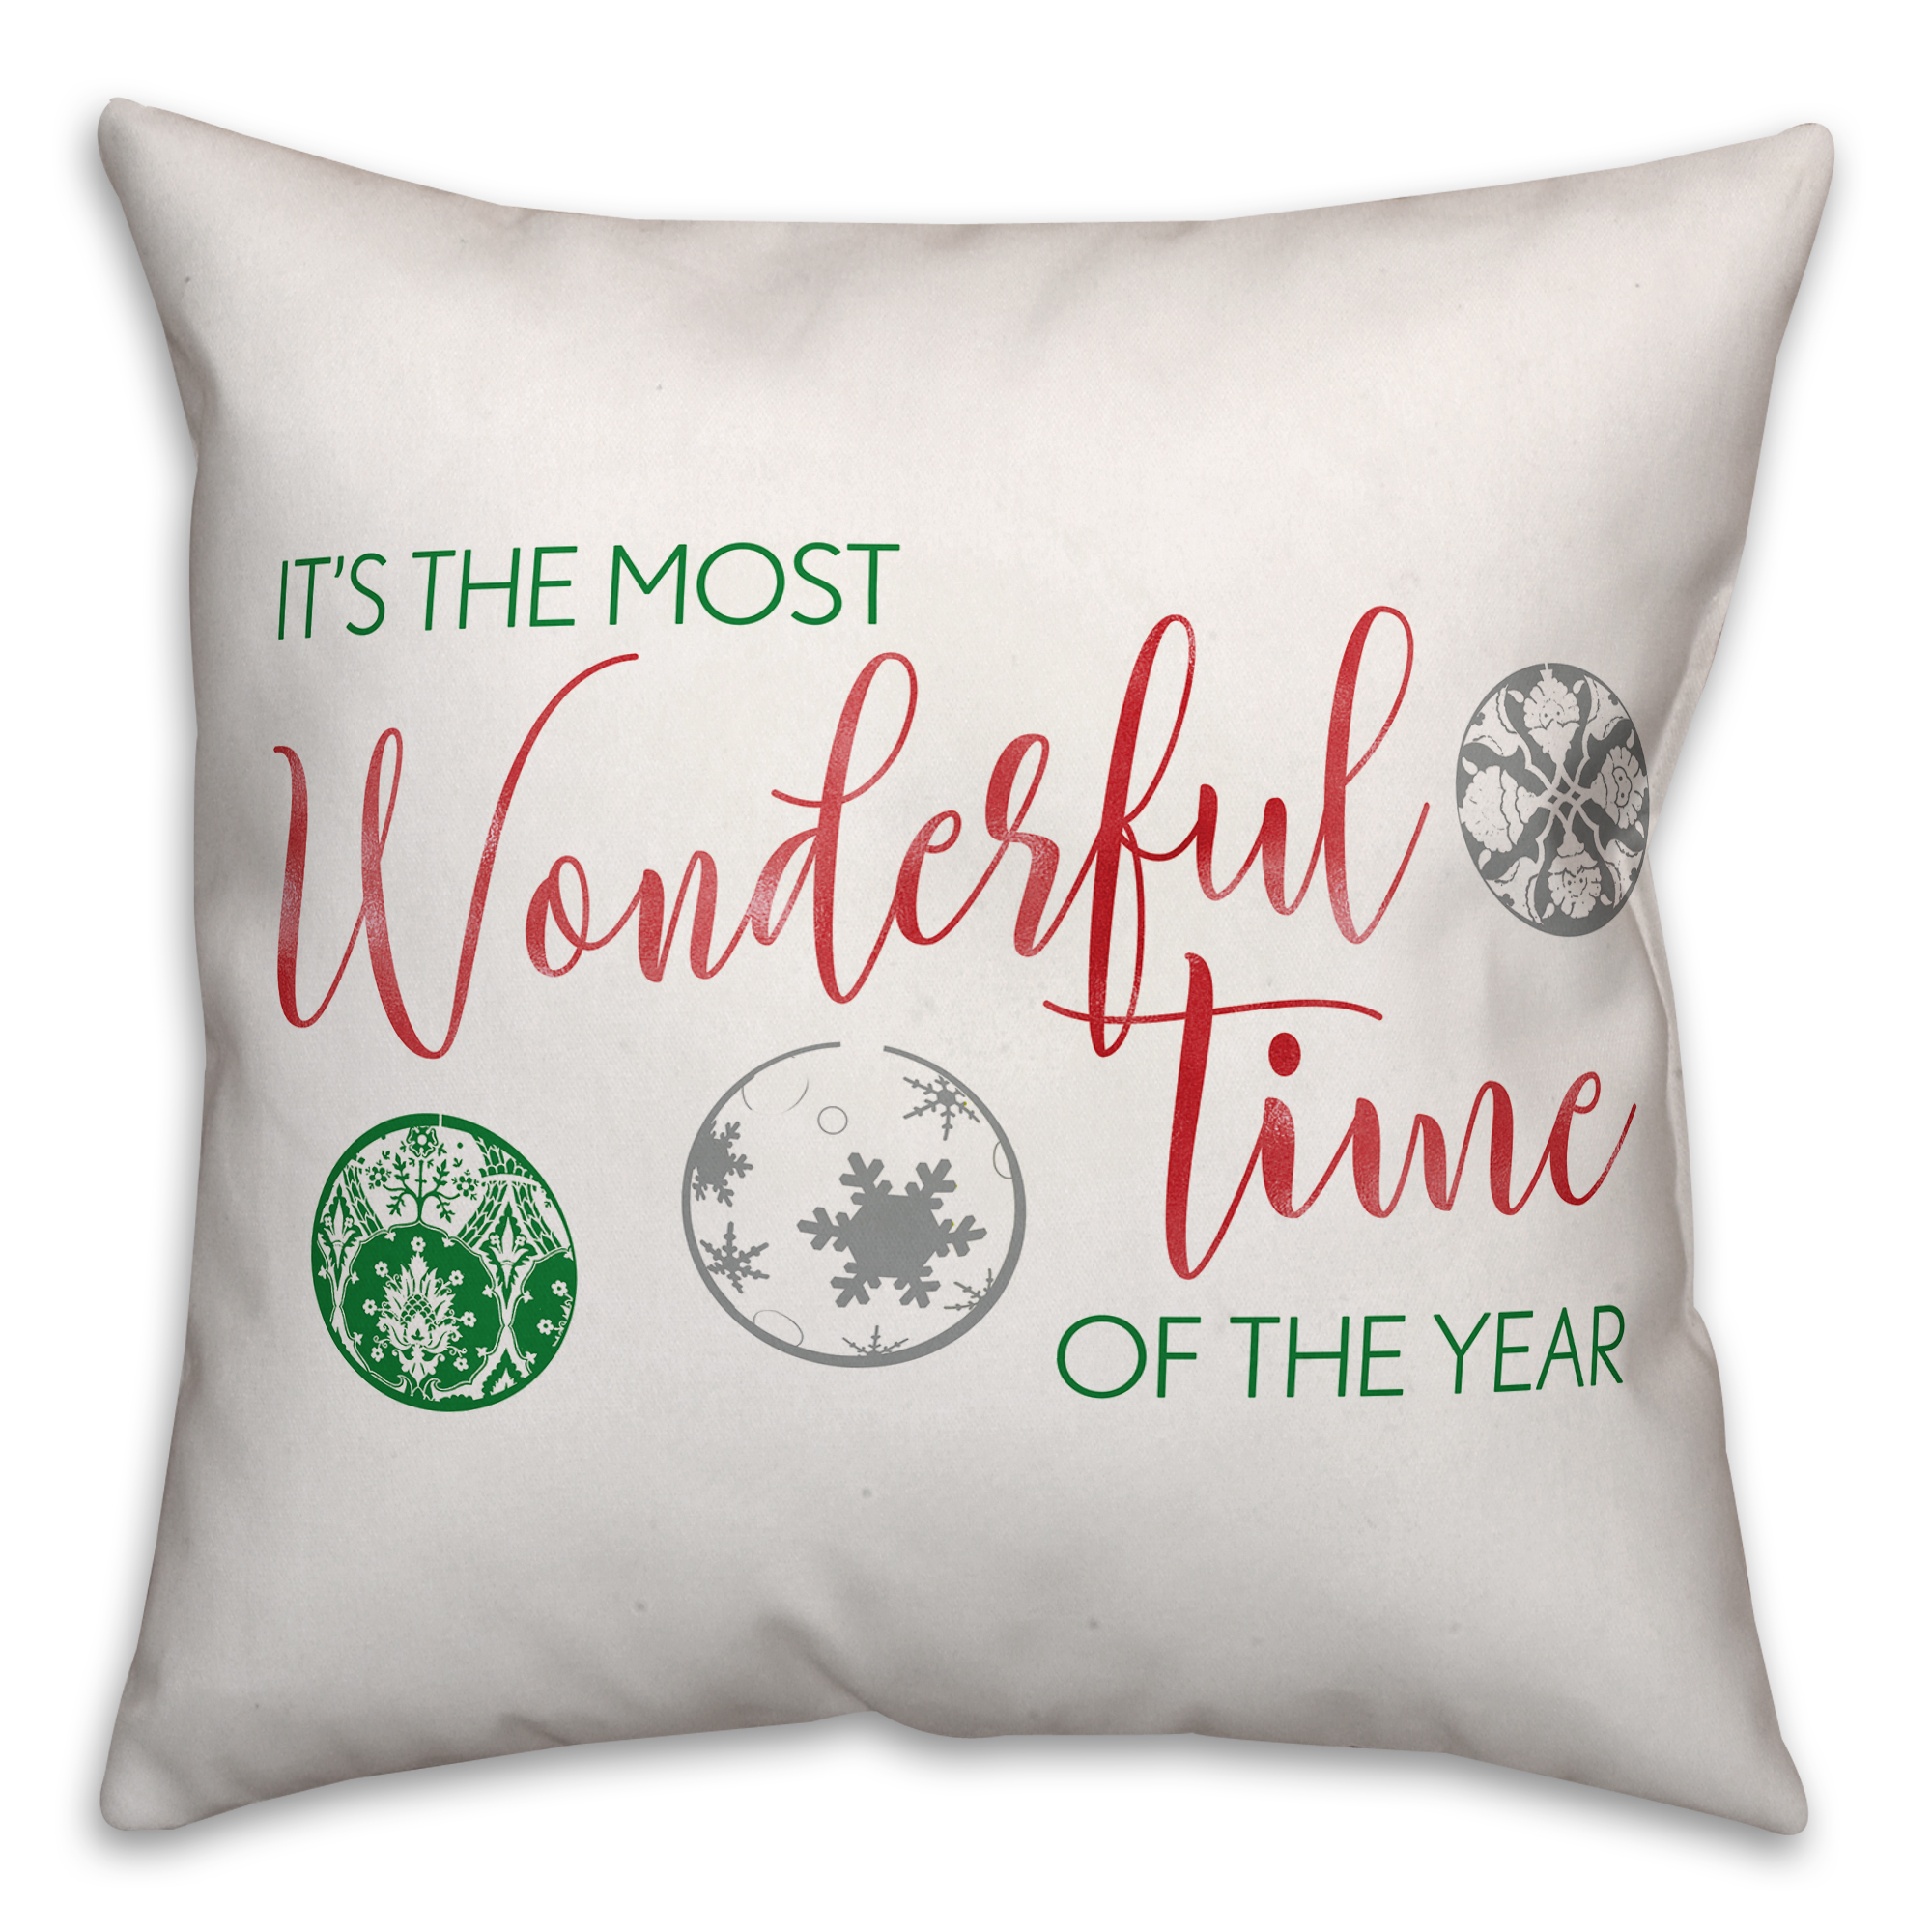 It's the Most Wonderful Time of the Year 16x16 Spun Poly Pillow